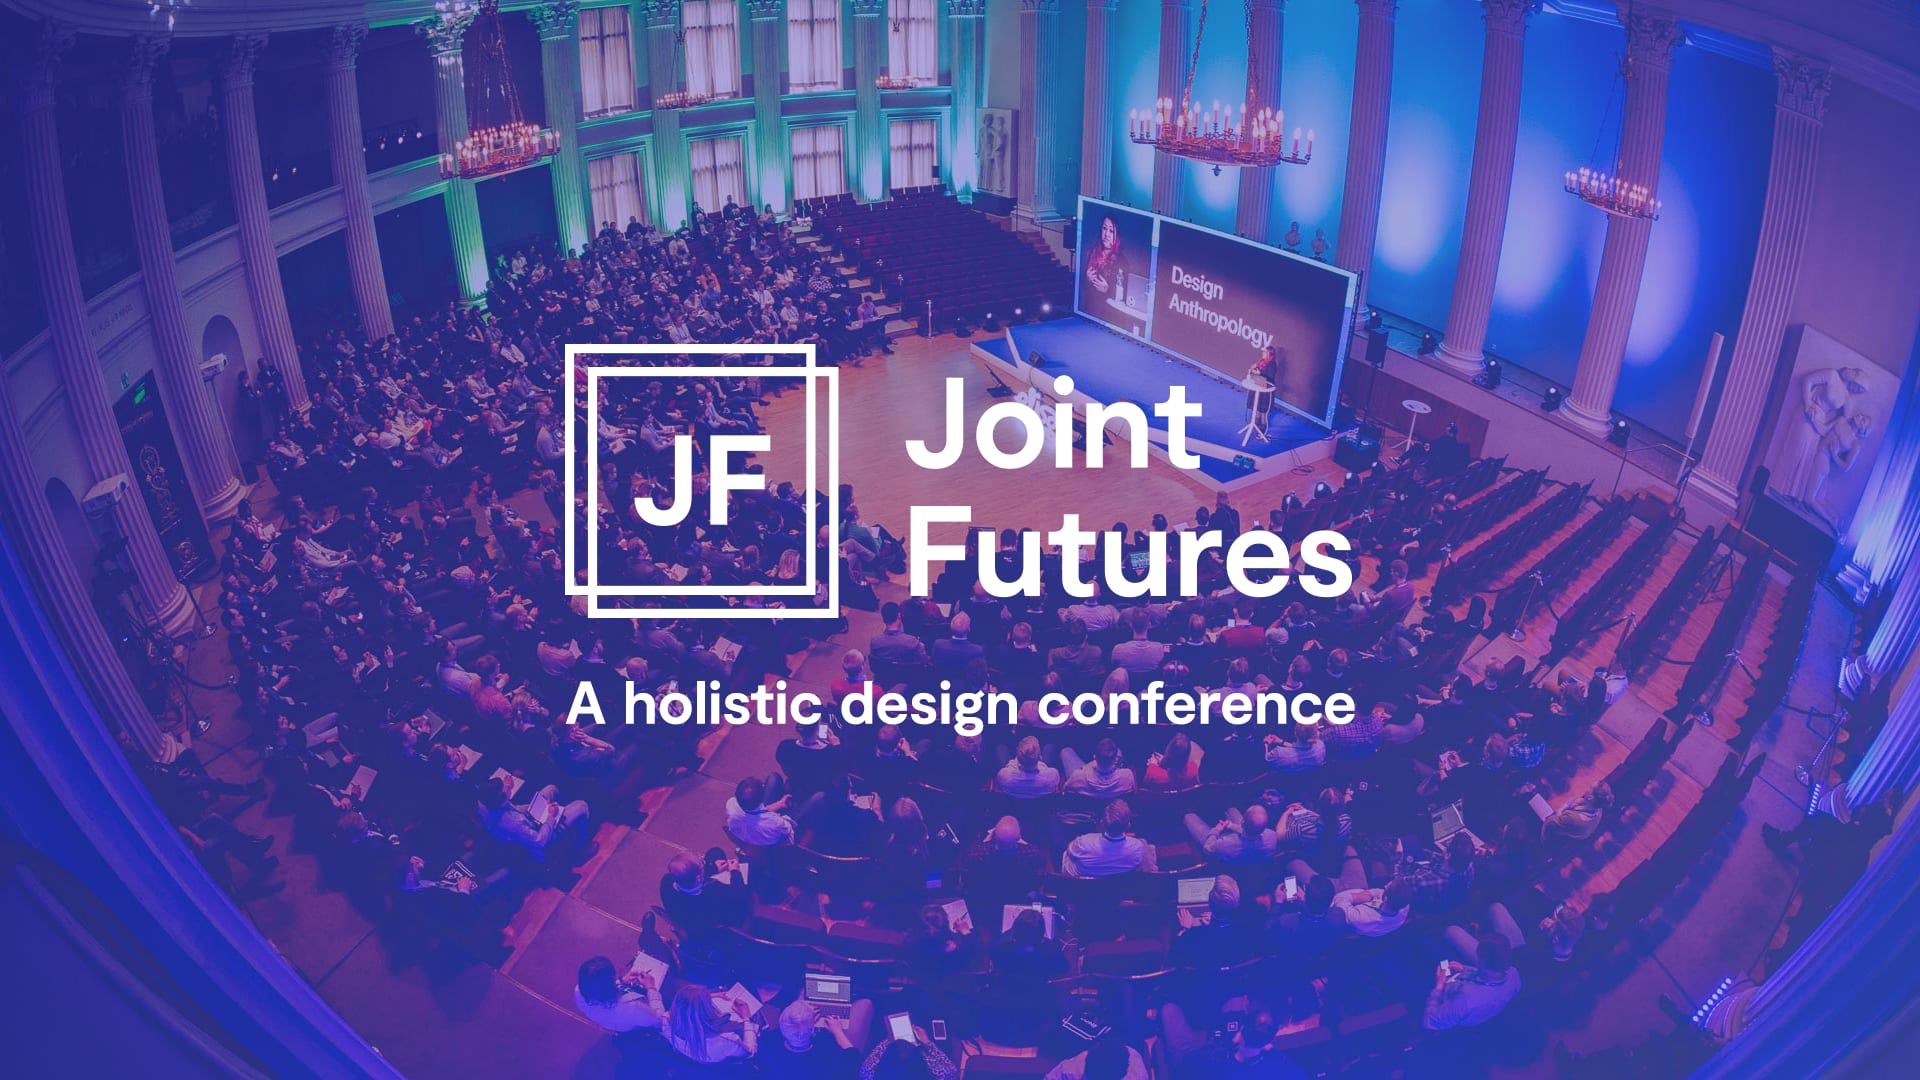 Joint Futures